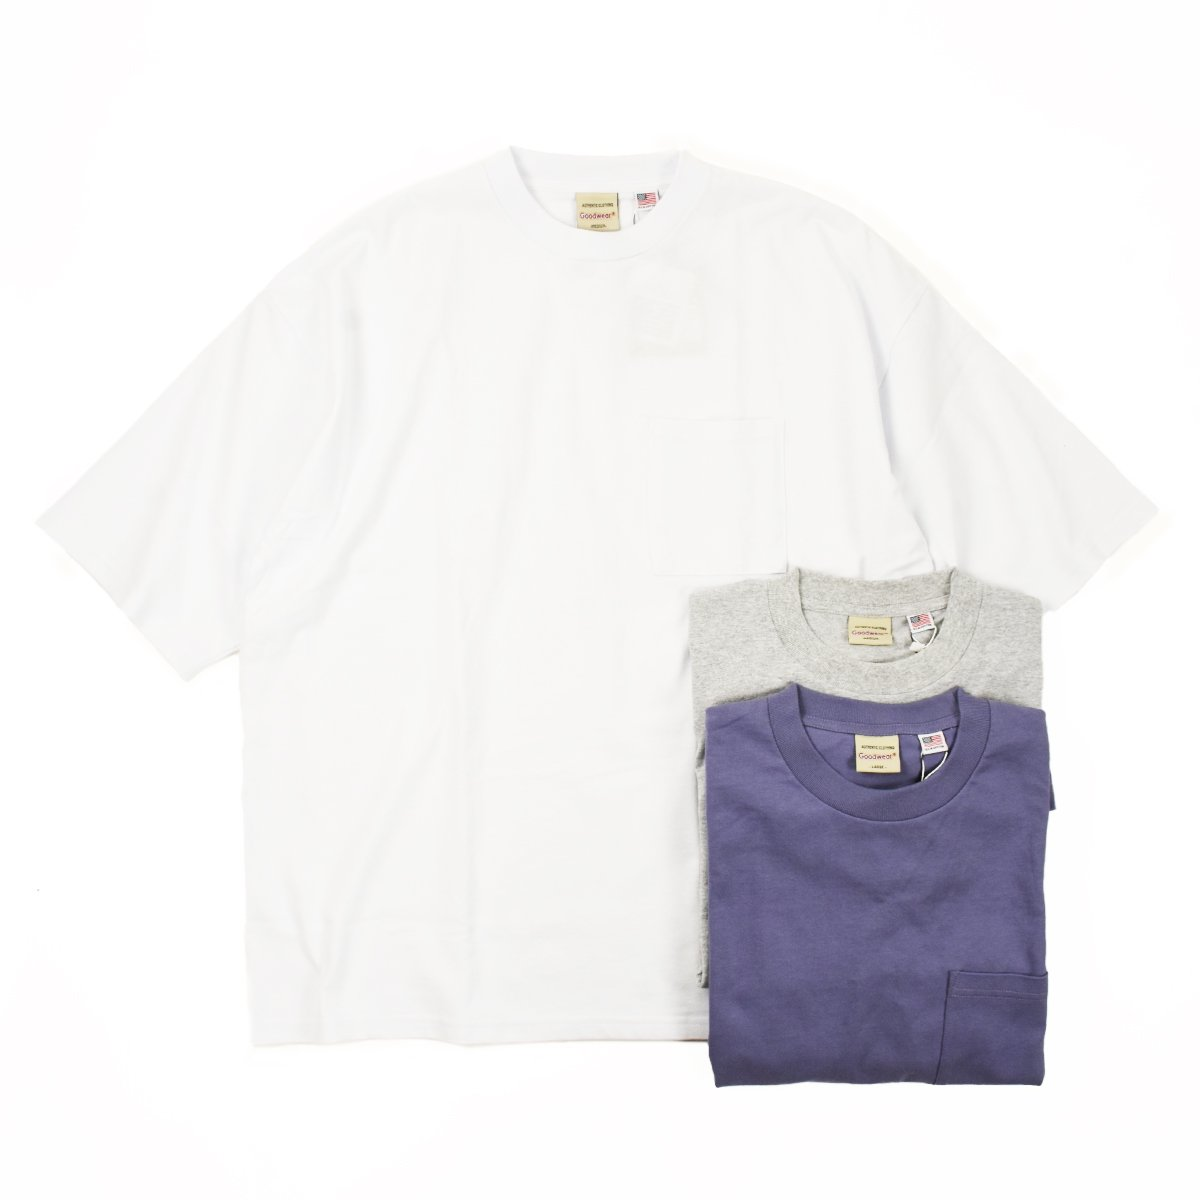 【Good Wear】Super Wide Pocket Tee (9Color)